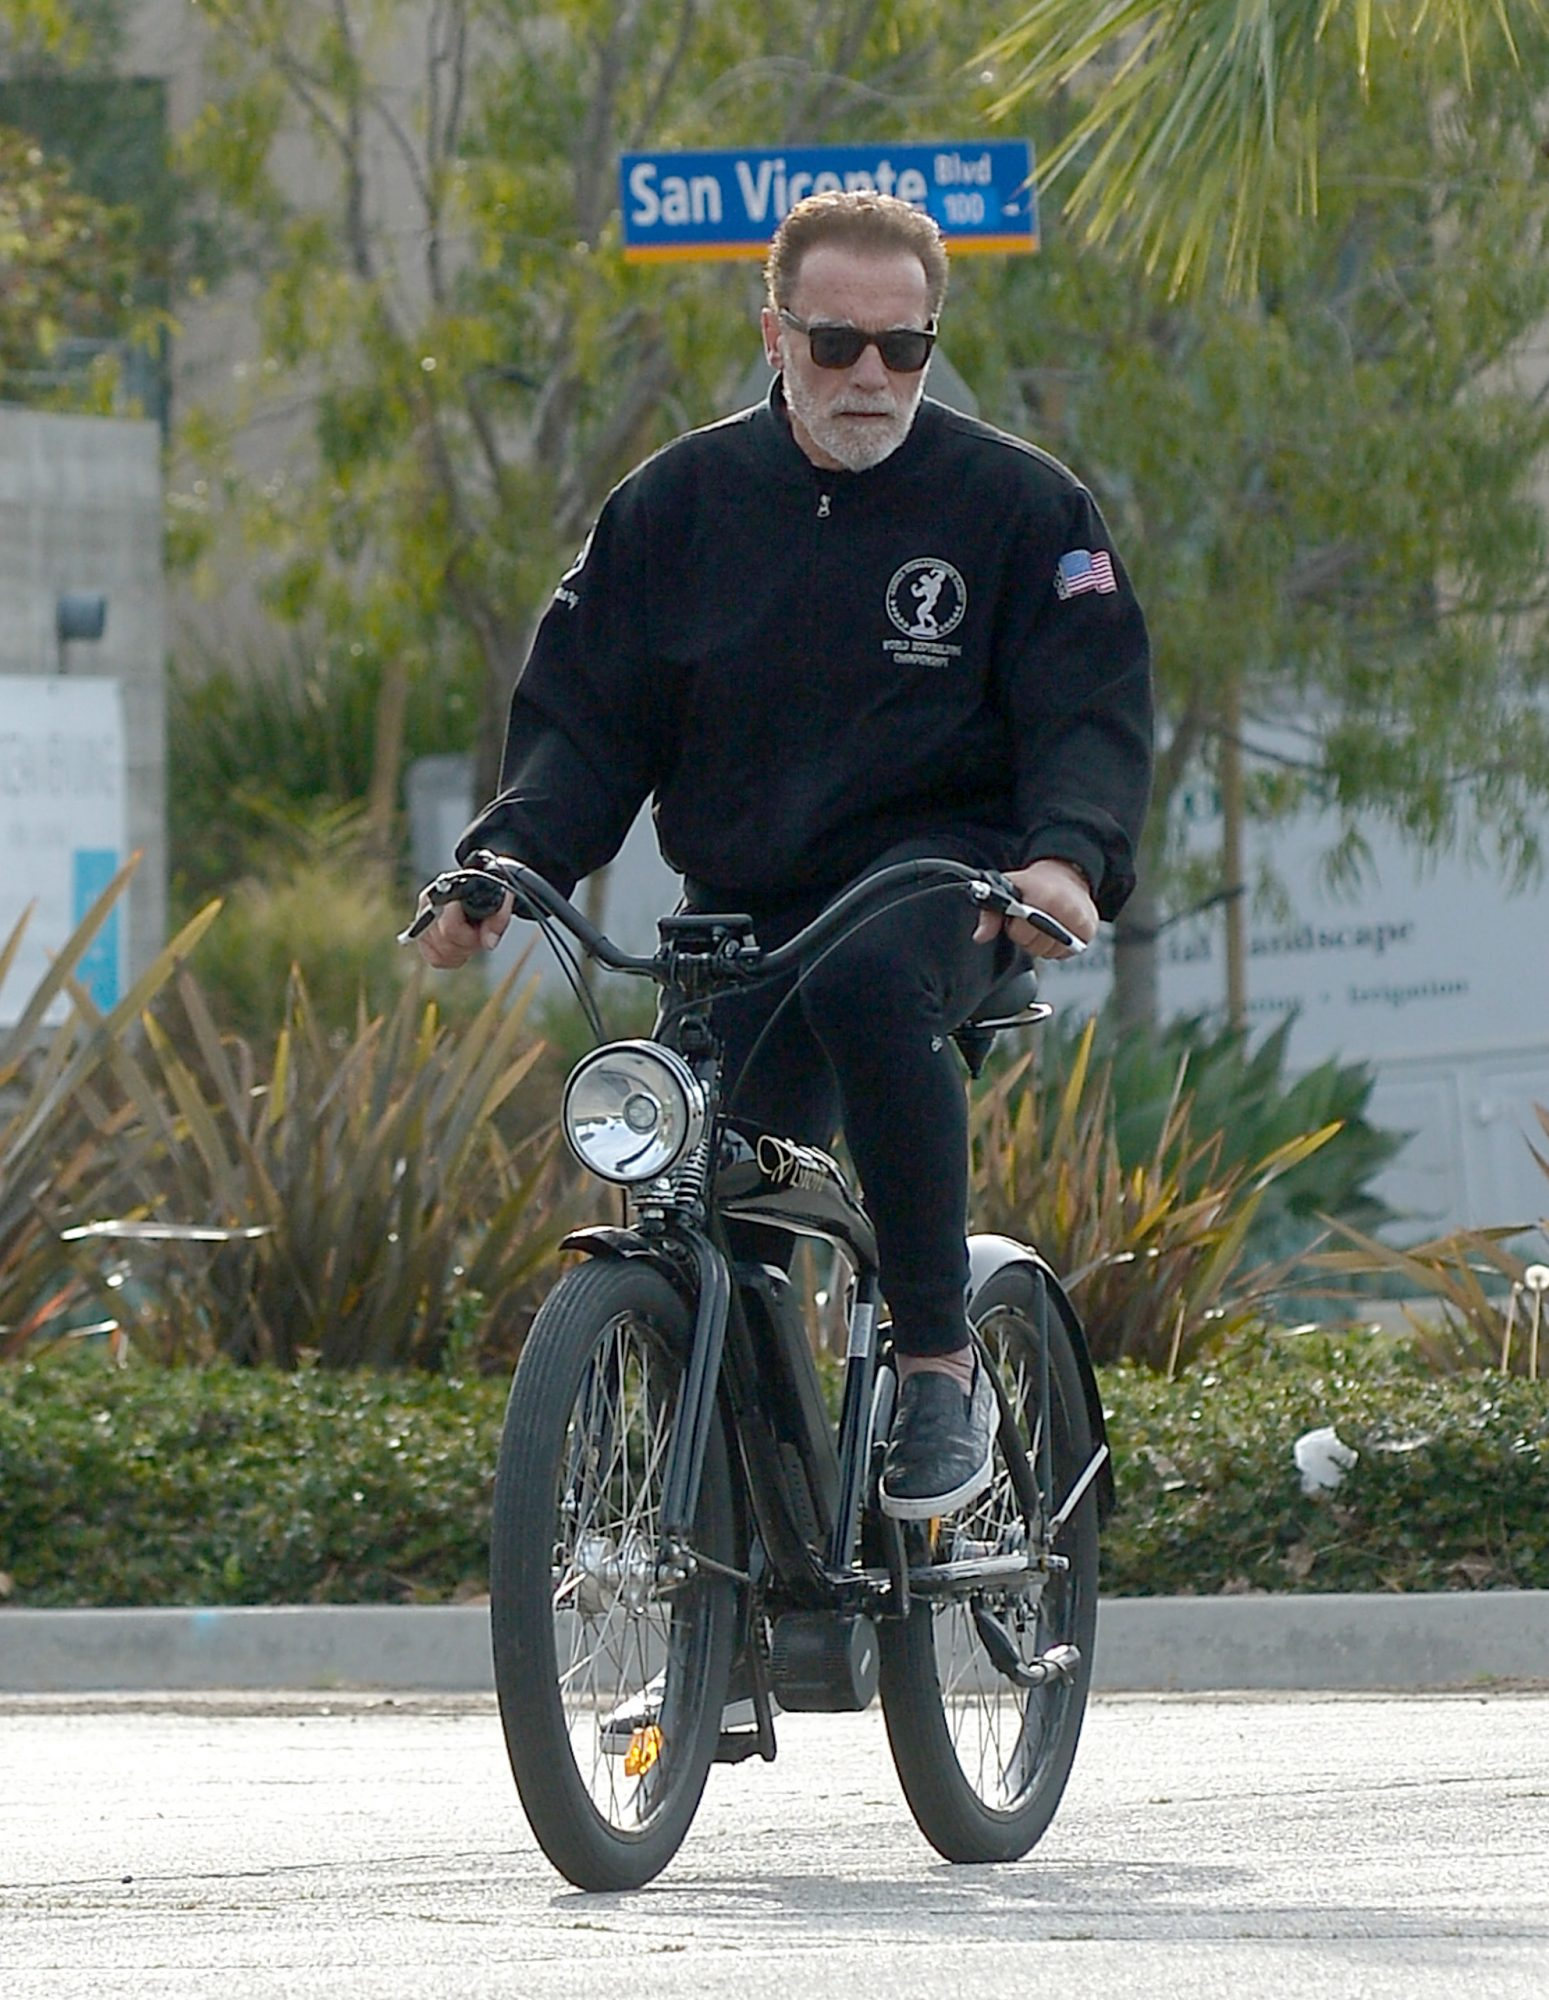 Arnold Schwarzenegger goes for a bicycle ride during the Coronavirus outbreak in Los Angeles. The 72 year old former Governor of California wore an all black outfit as he rode along on a vintage style ride. Arnold Schwarzenegger riding his bike after his daughter Katherine made the farmers market